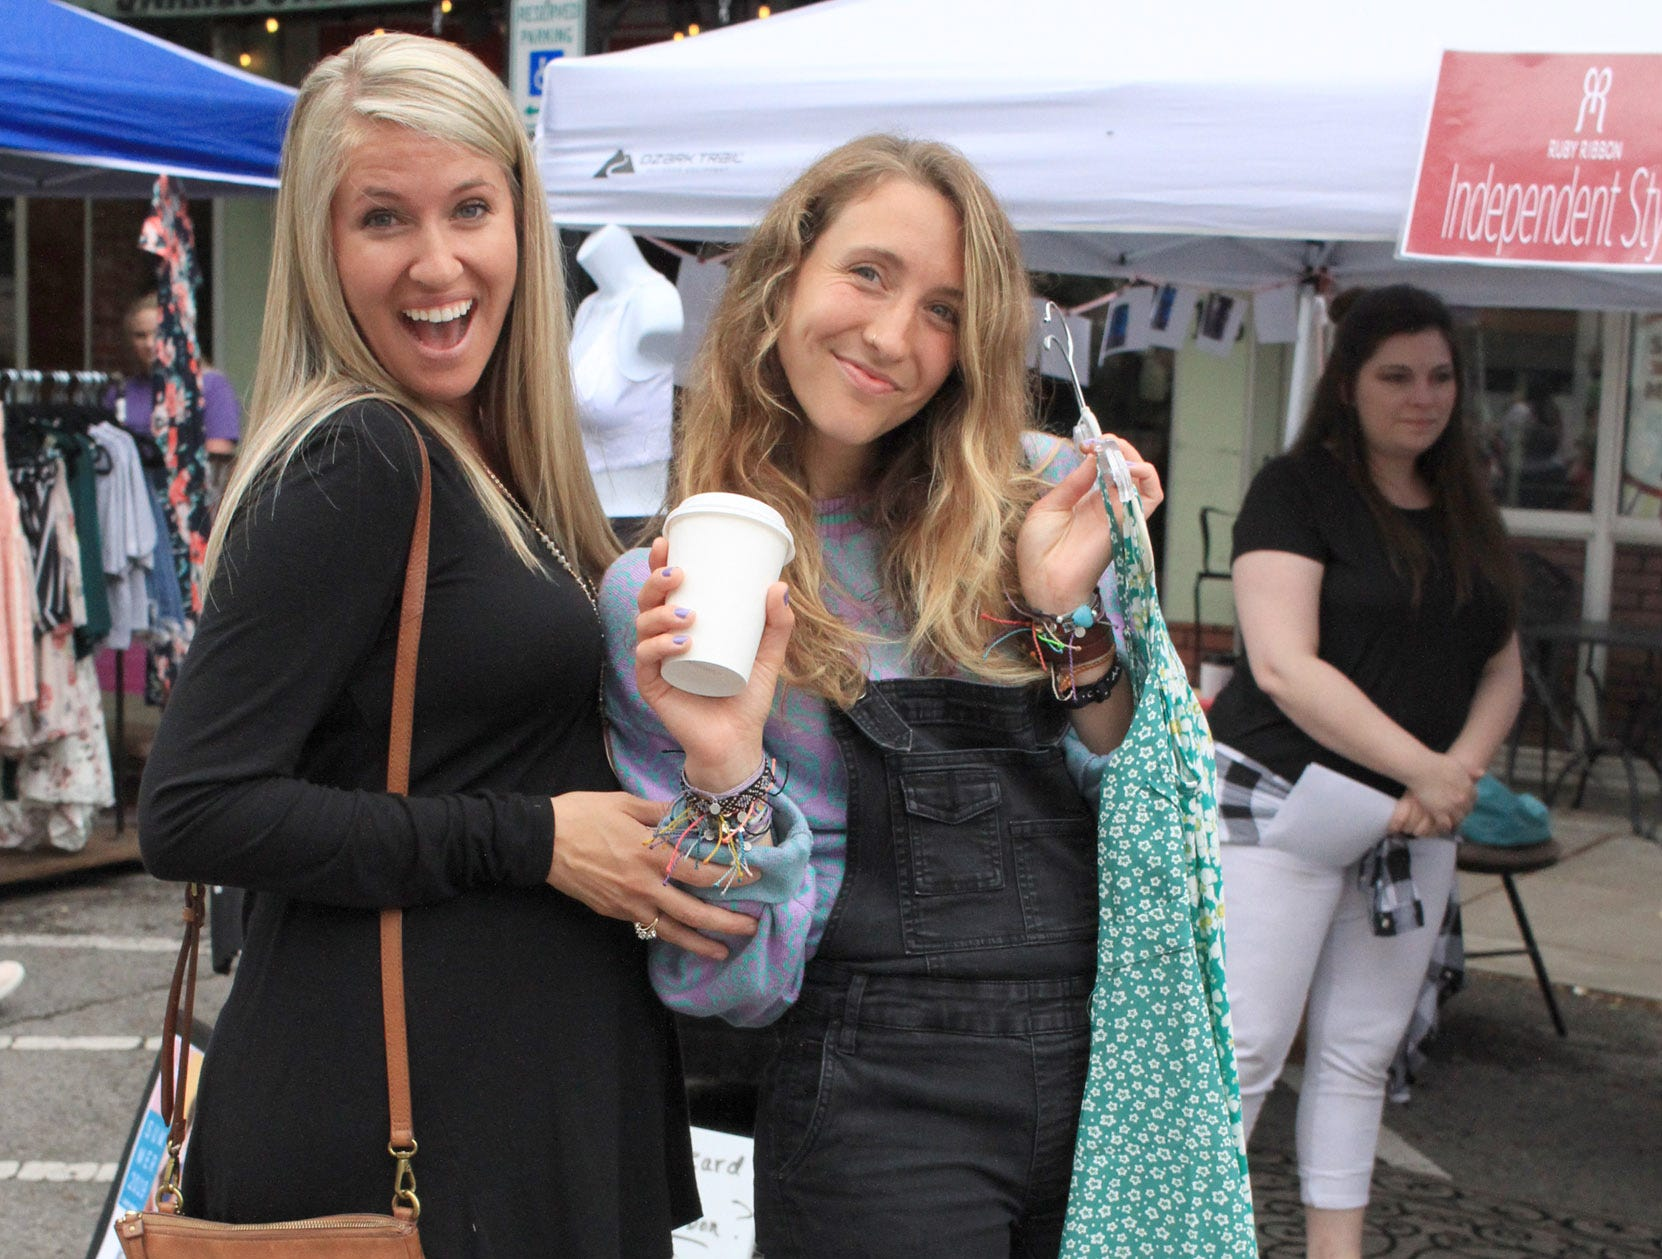 Jamie Turbeville and Katie Hurst are all about the Fashion Crawl in Gallatin, TN on Saturday, May 11, 2019.